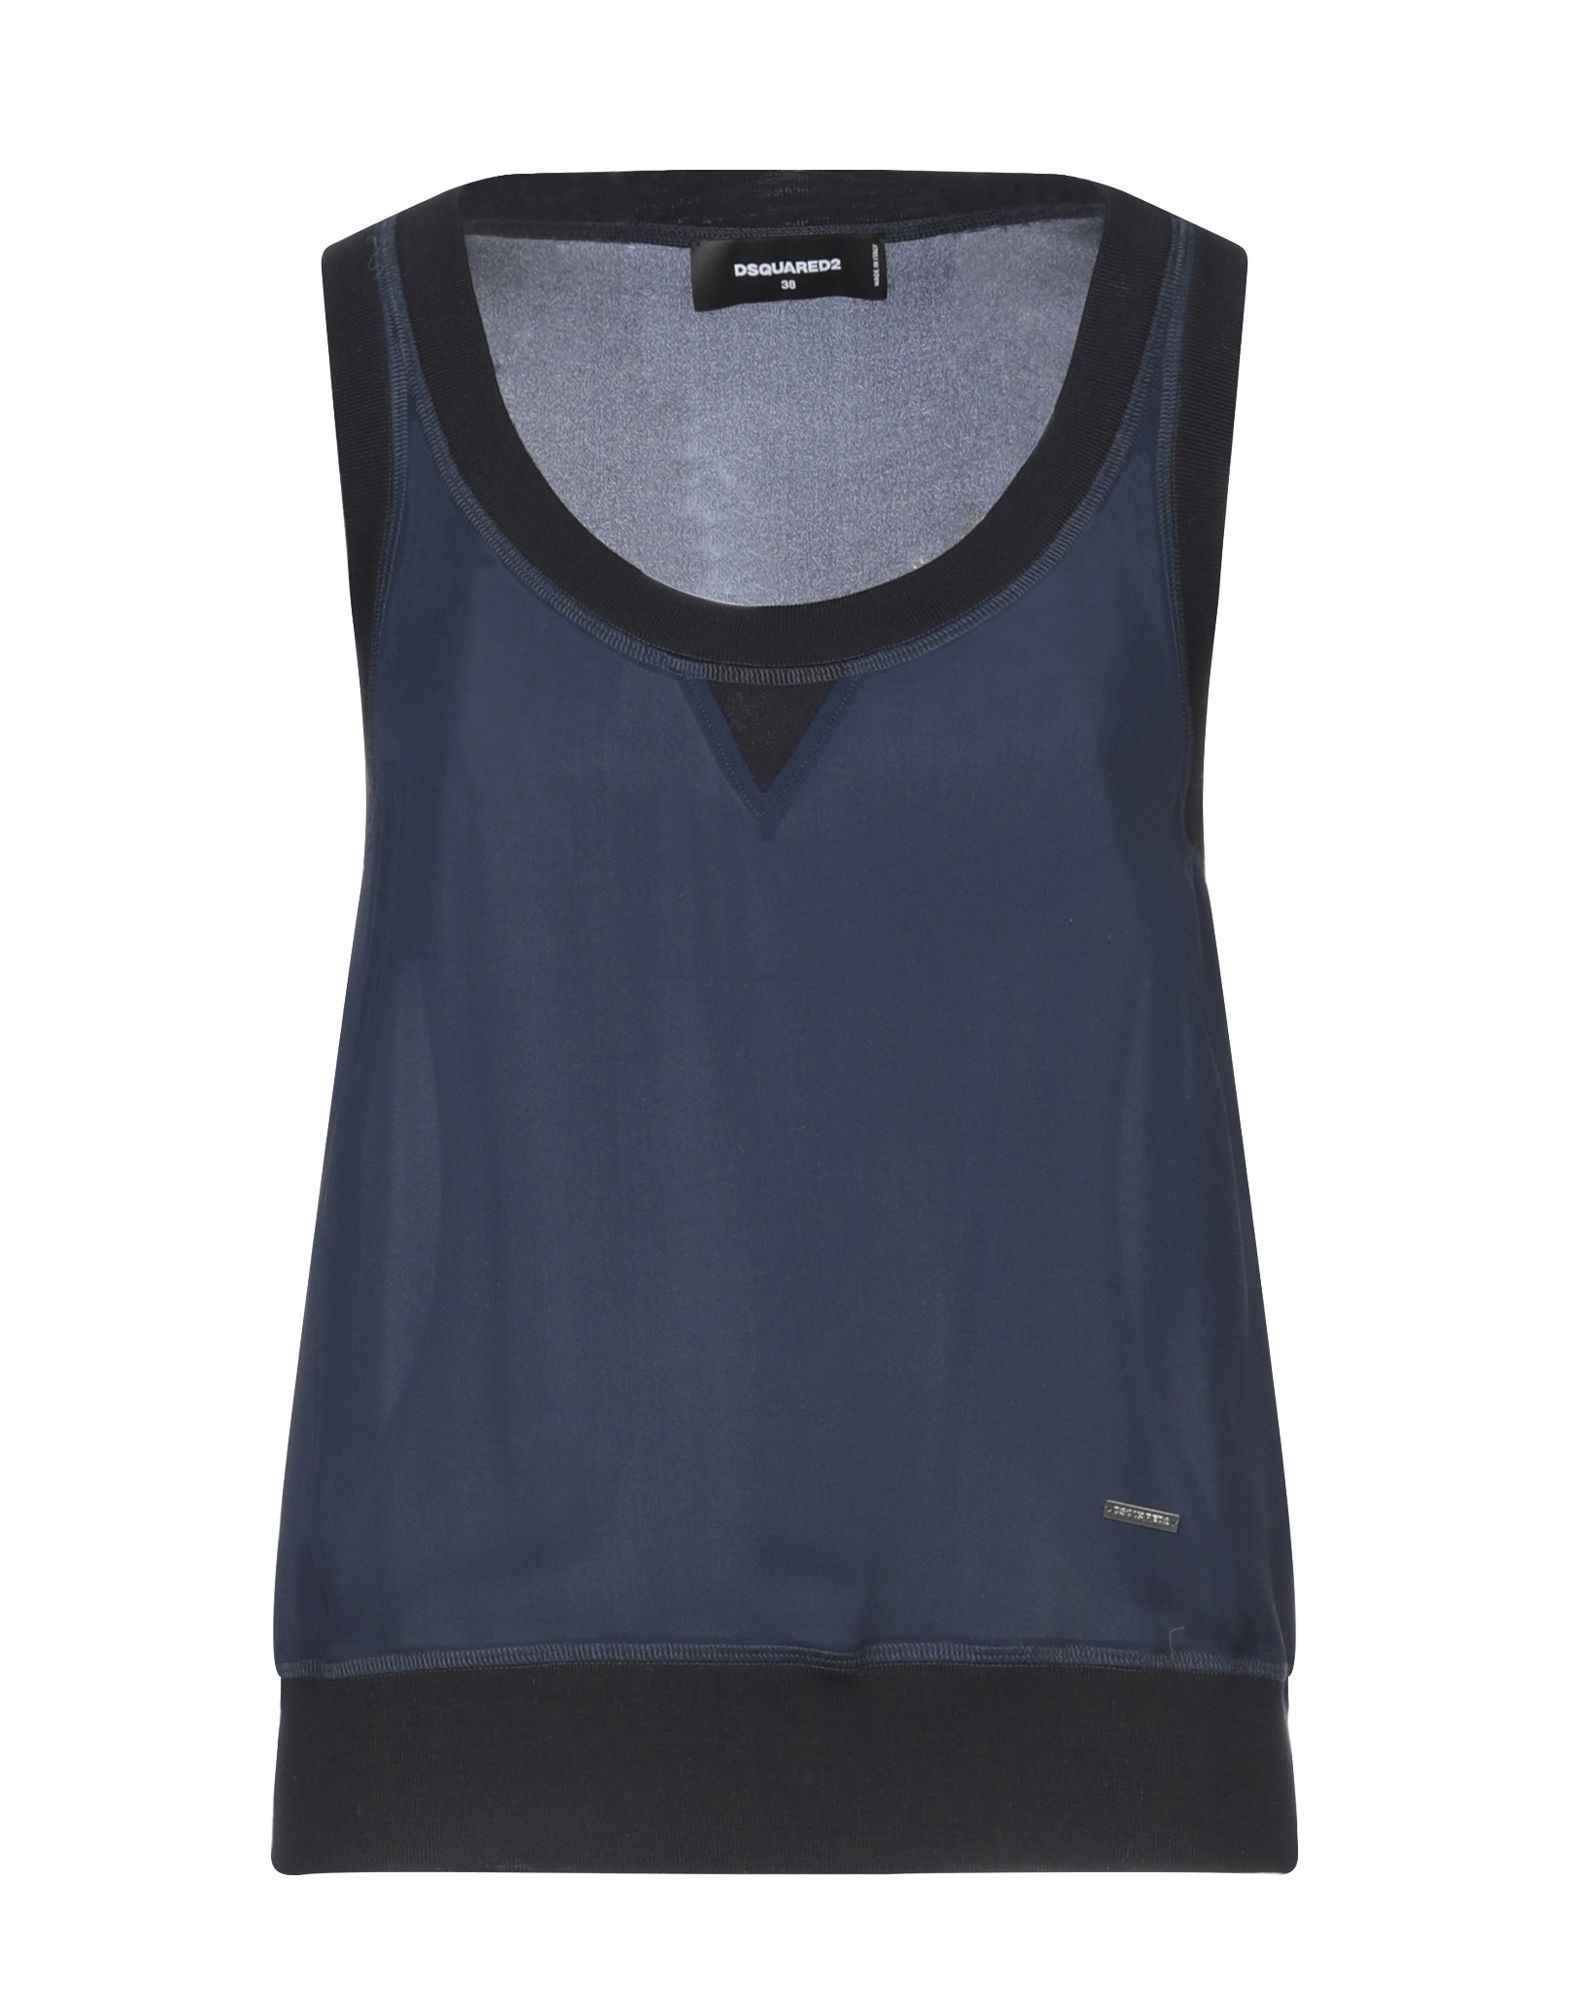 DSQUARED2 Tube tops. knitted, crepe, logo, solid color, round collar, sleeveless, no pockets. 100% Silk, Elastane